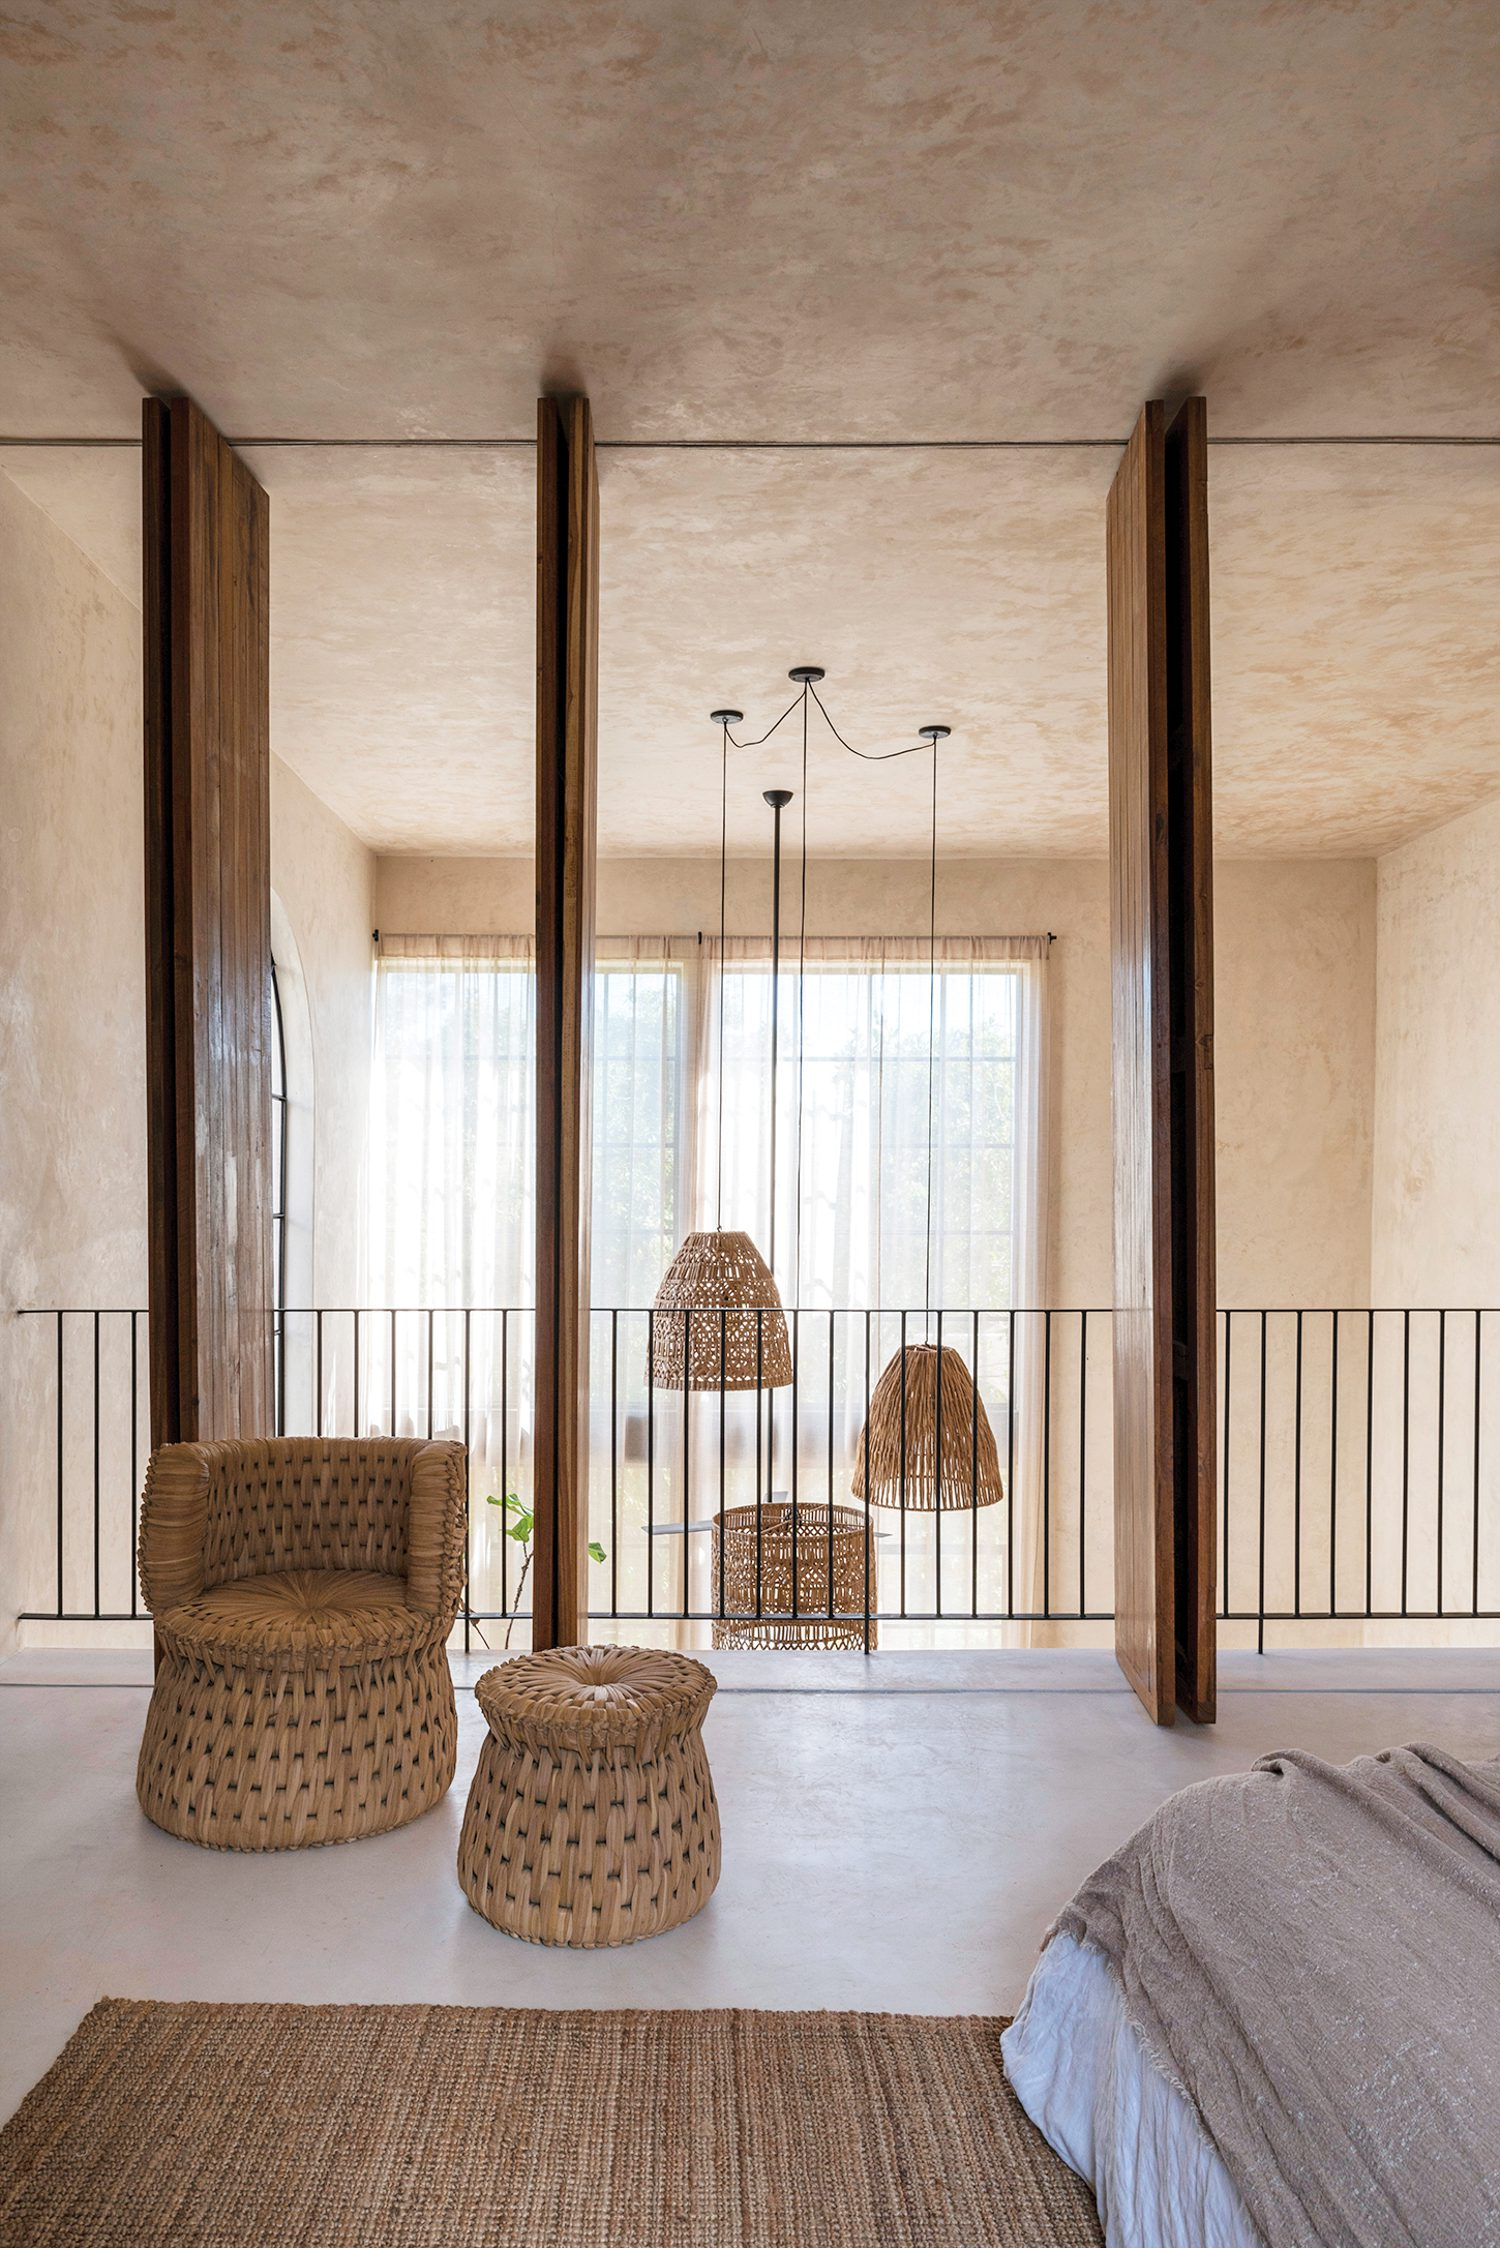 The penthouse's mezzanine bedroom overlooks the living area below but can be closed off for privacy via wooden panels; the chair and lamp are crafted of woven palm.